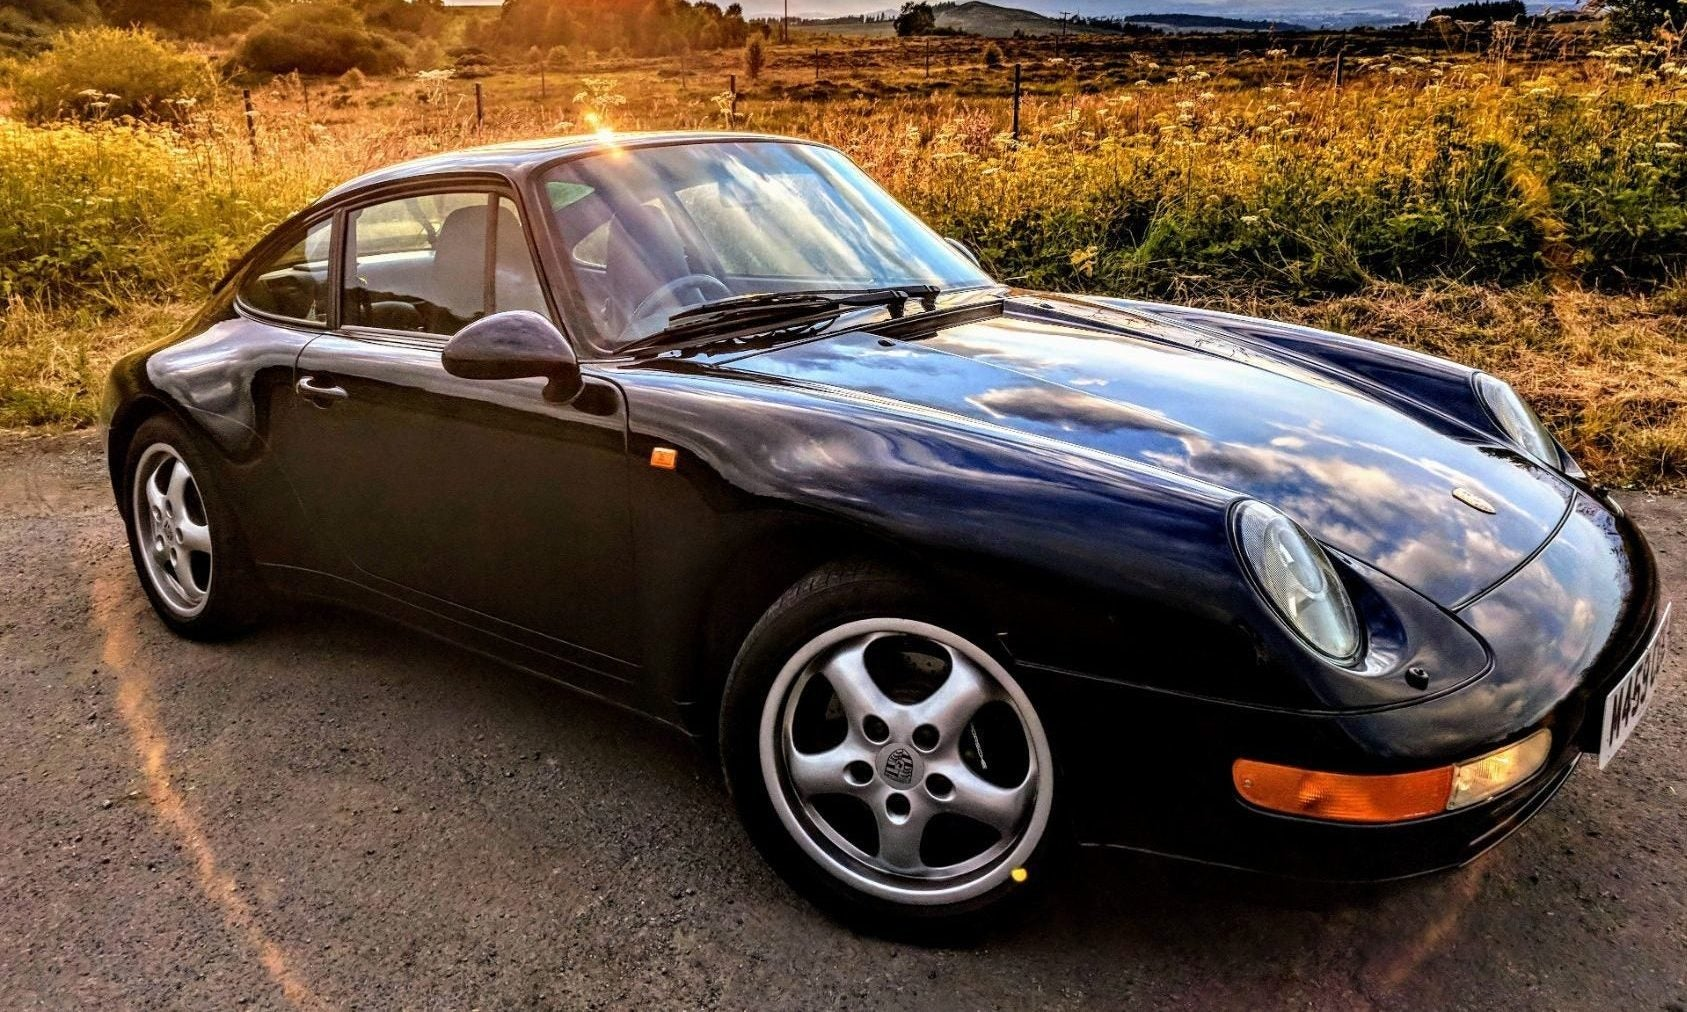 Automoblog Book Garage: Porsche 911: The Practically Free Supercar